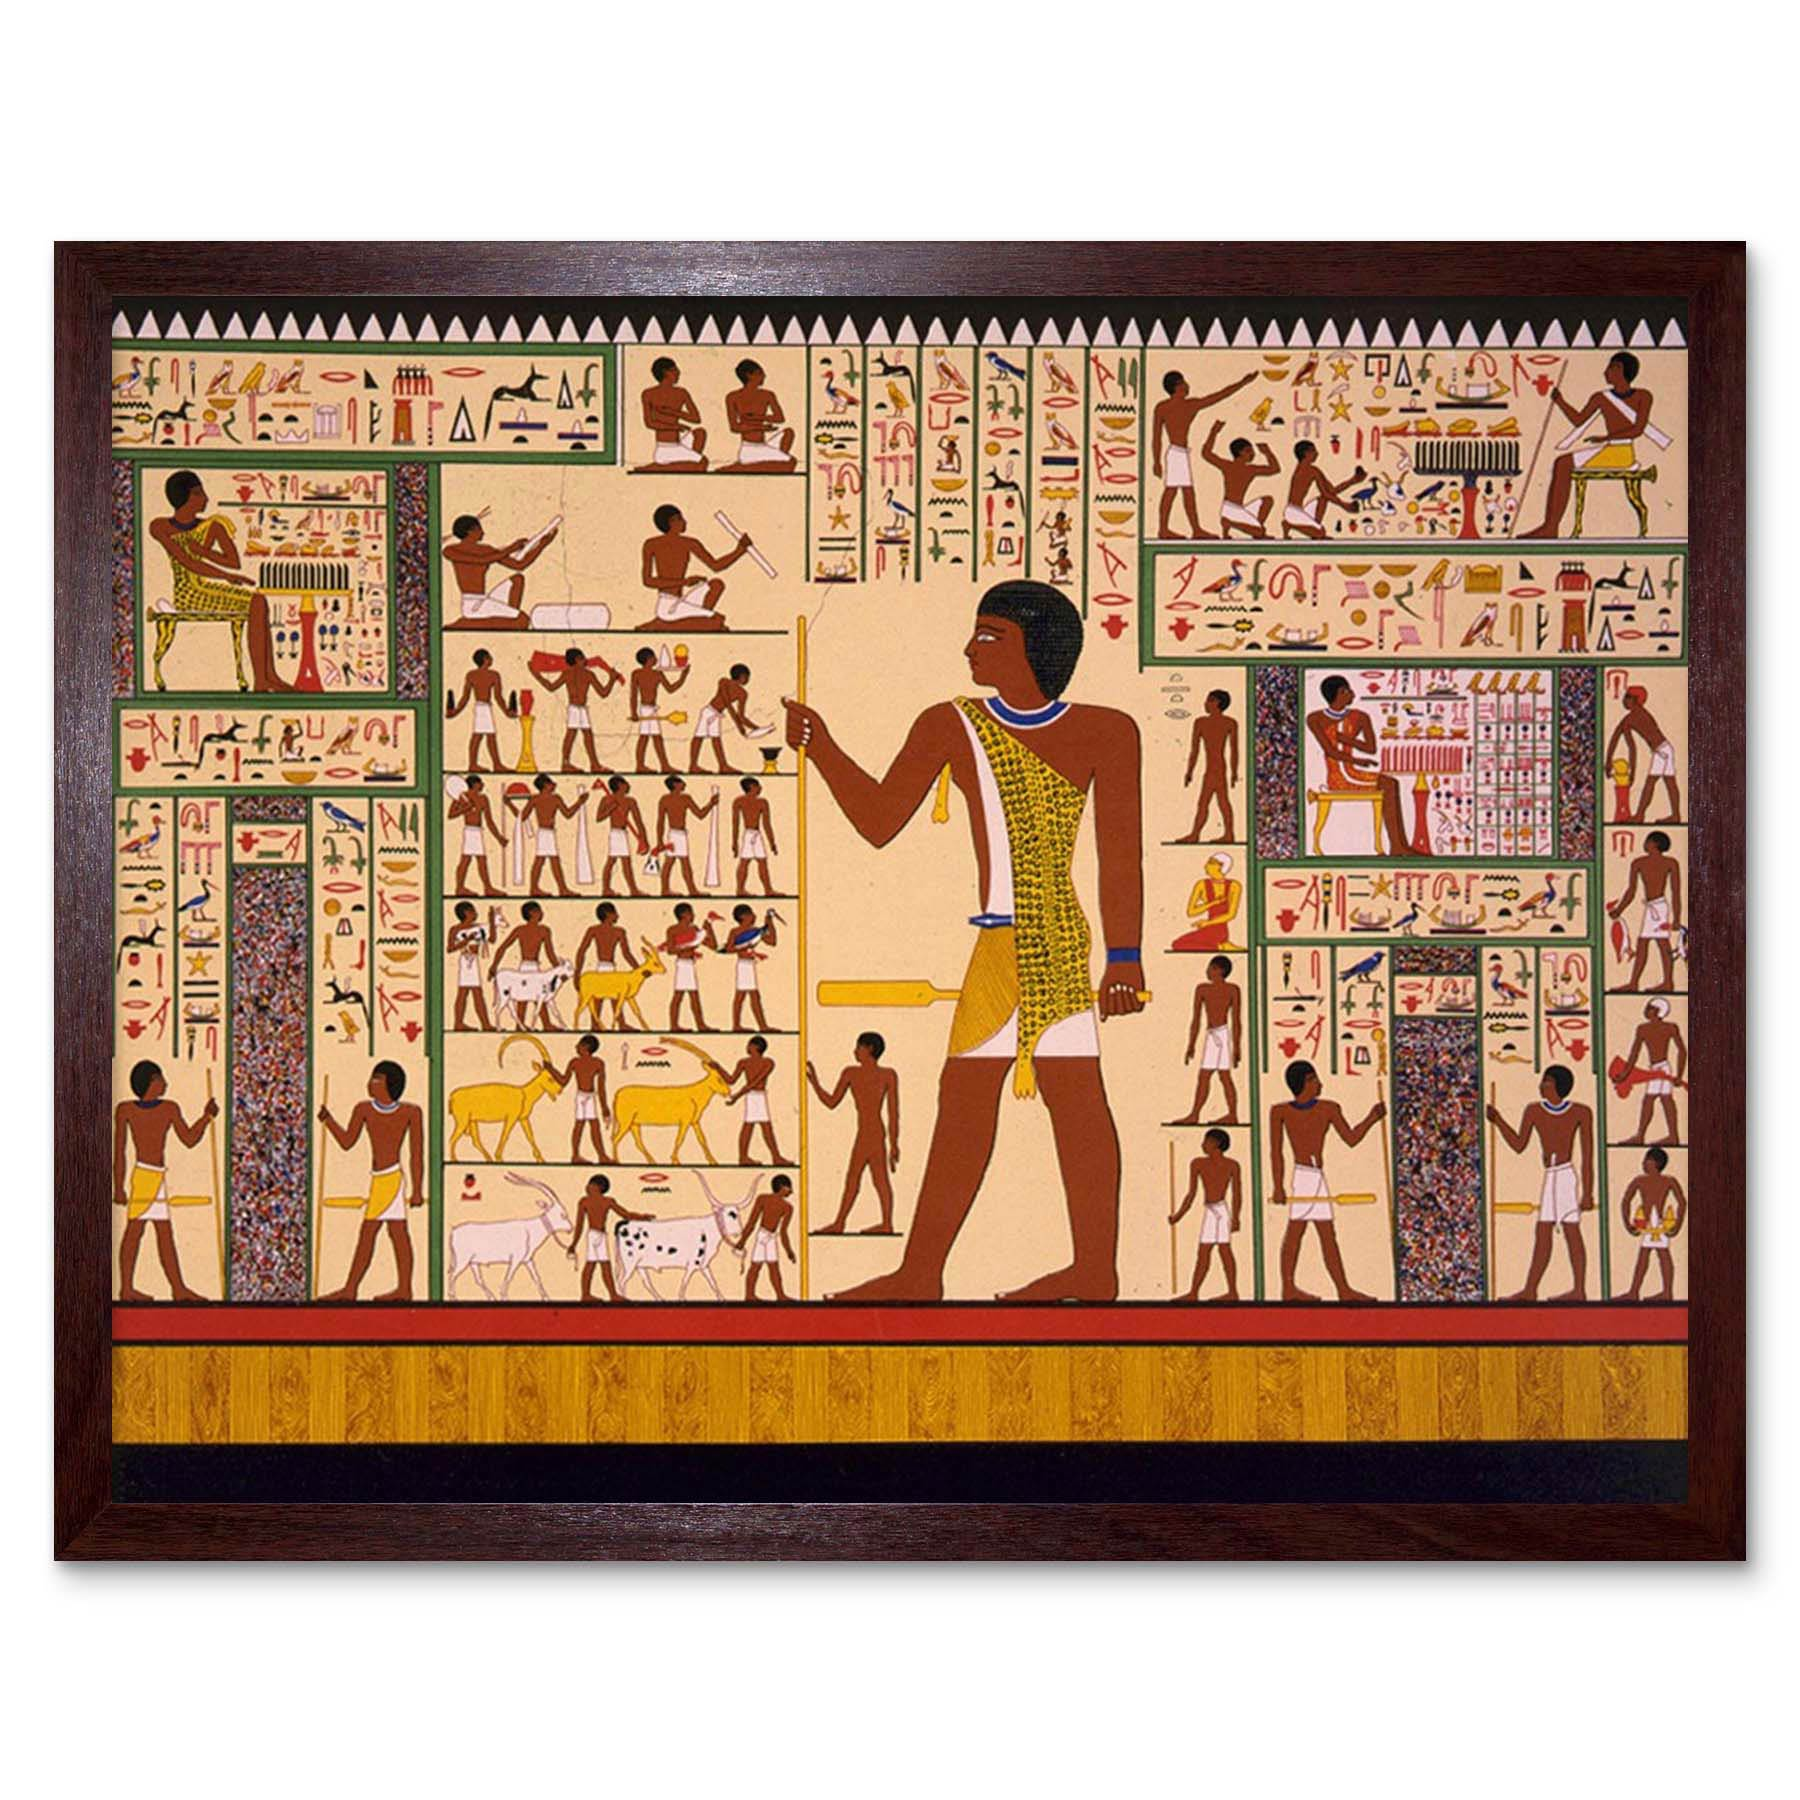 Paintings Drawing Mural Giza Tomb Ancient Egypt Hieroglyphic 12x16